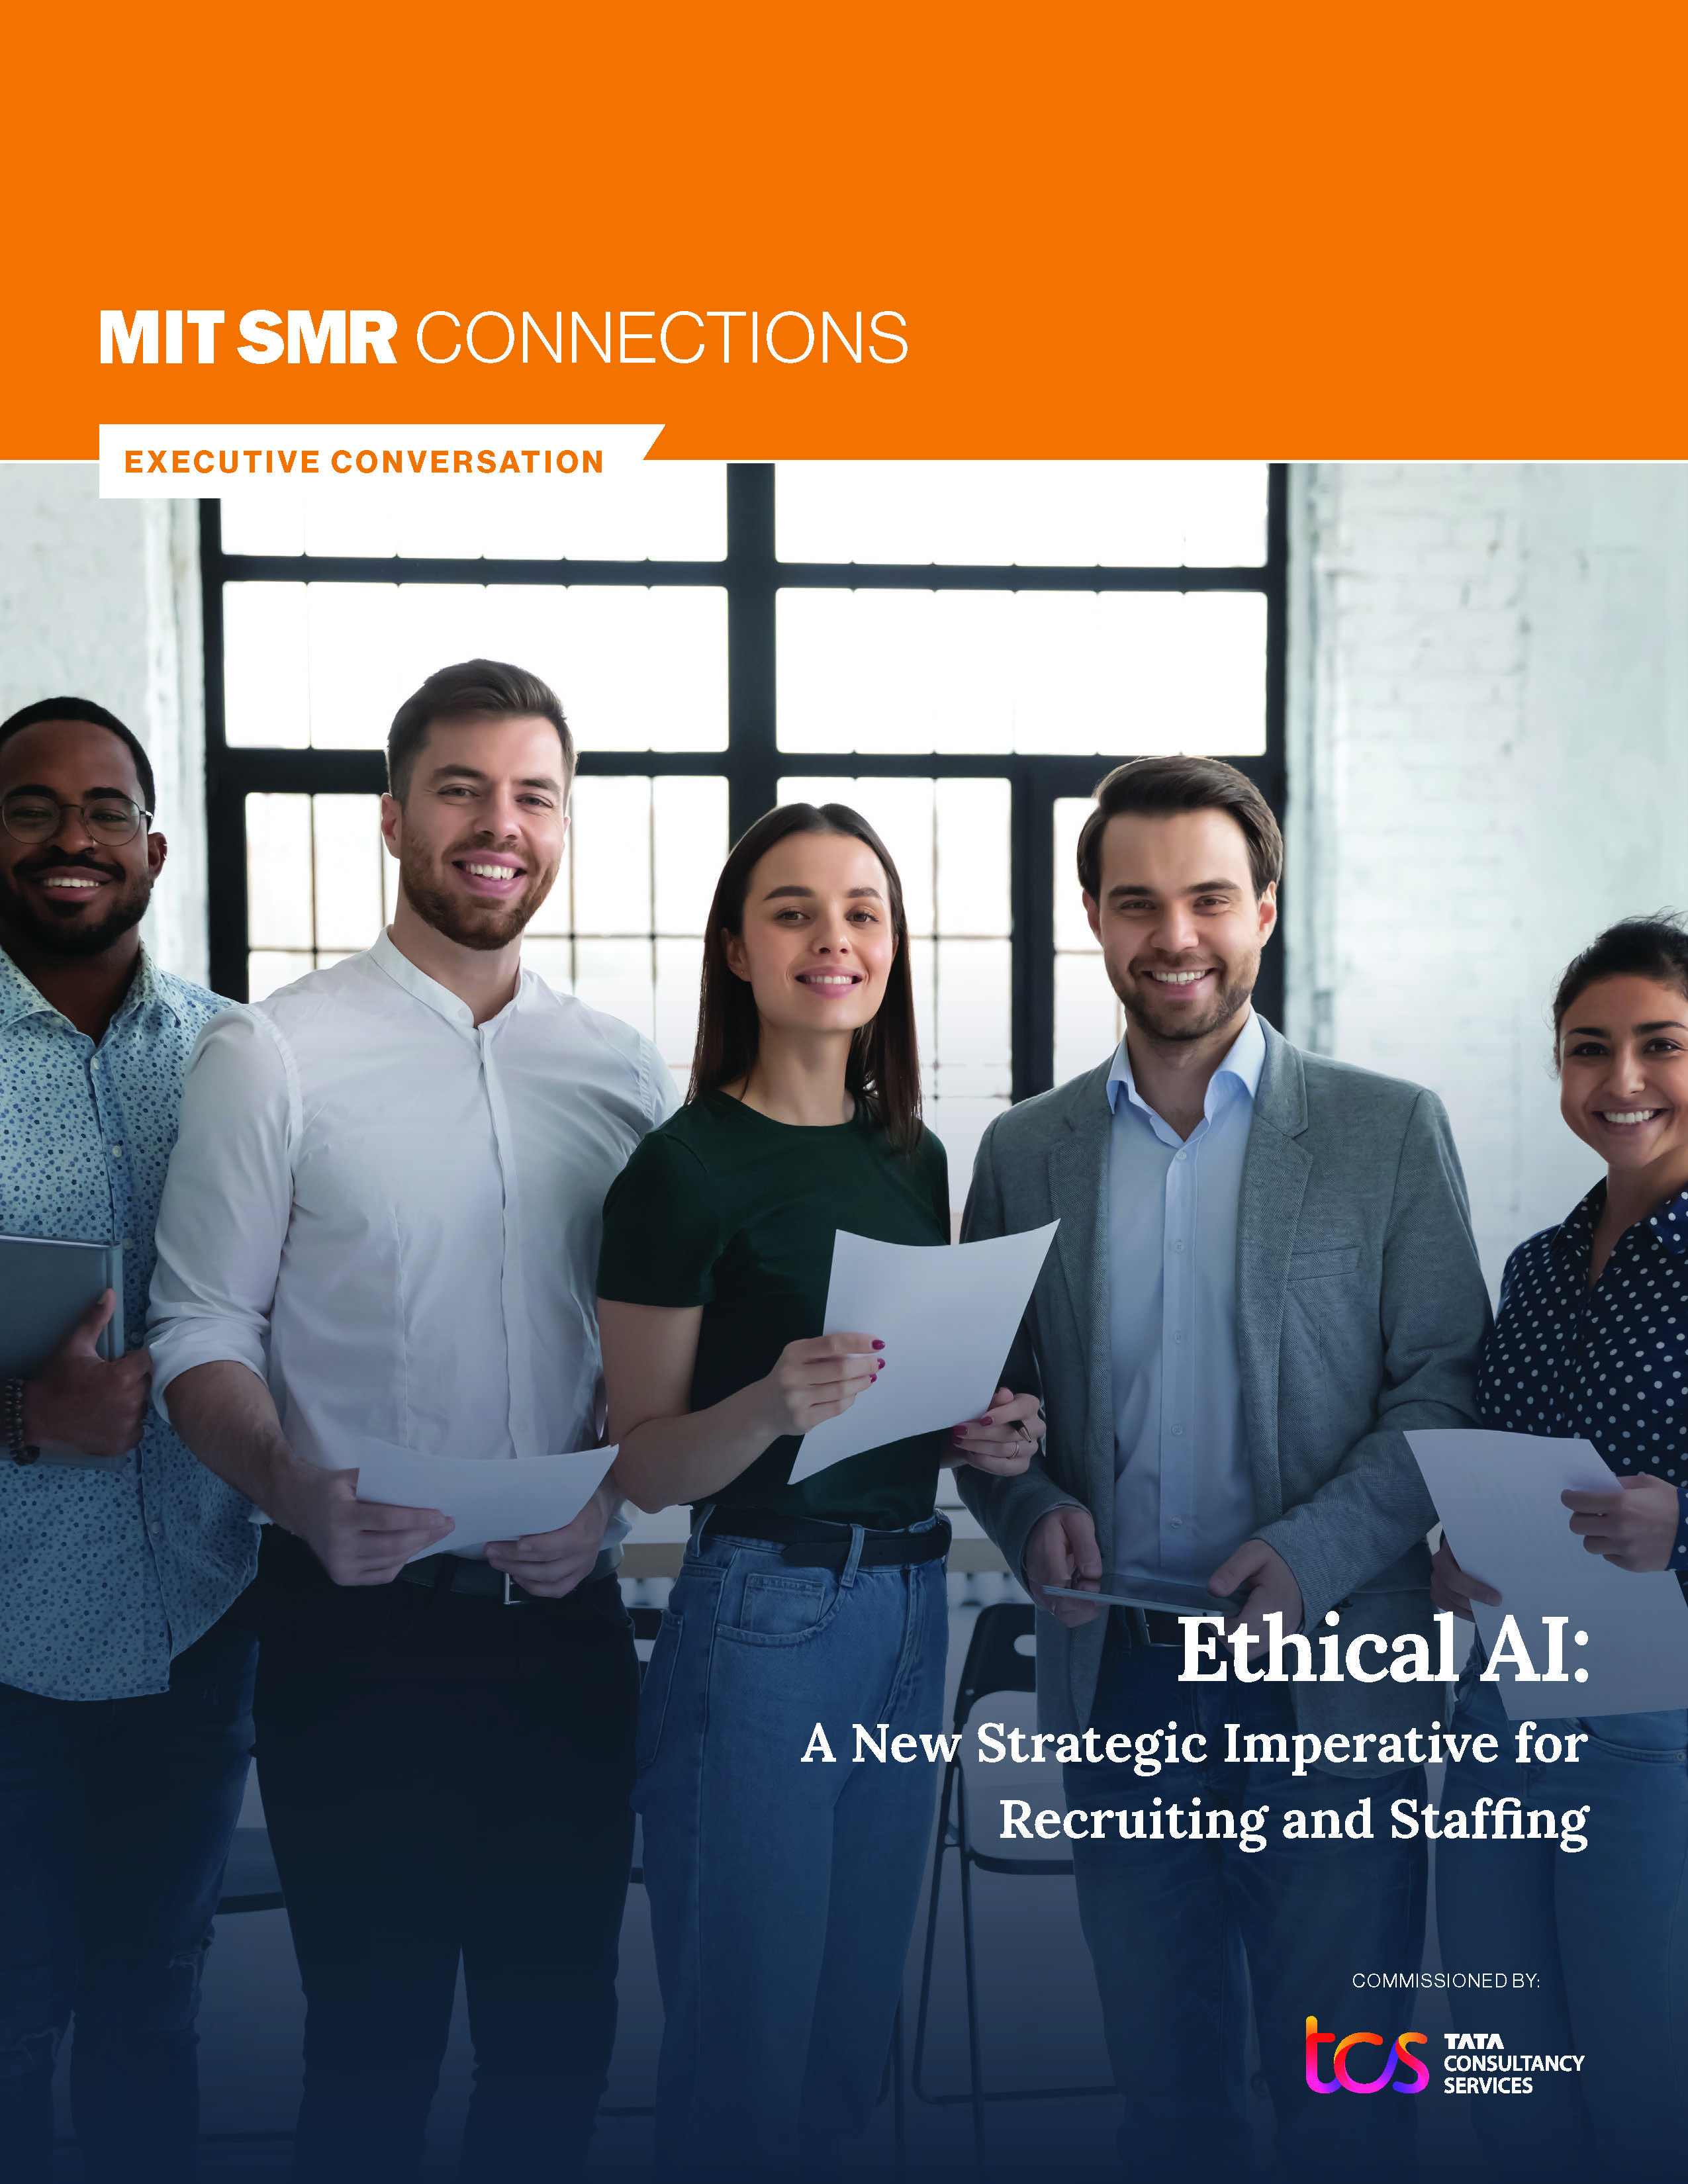 Ethical AI: A New Strategic Imperative for Recruiting and Staffing